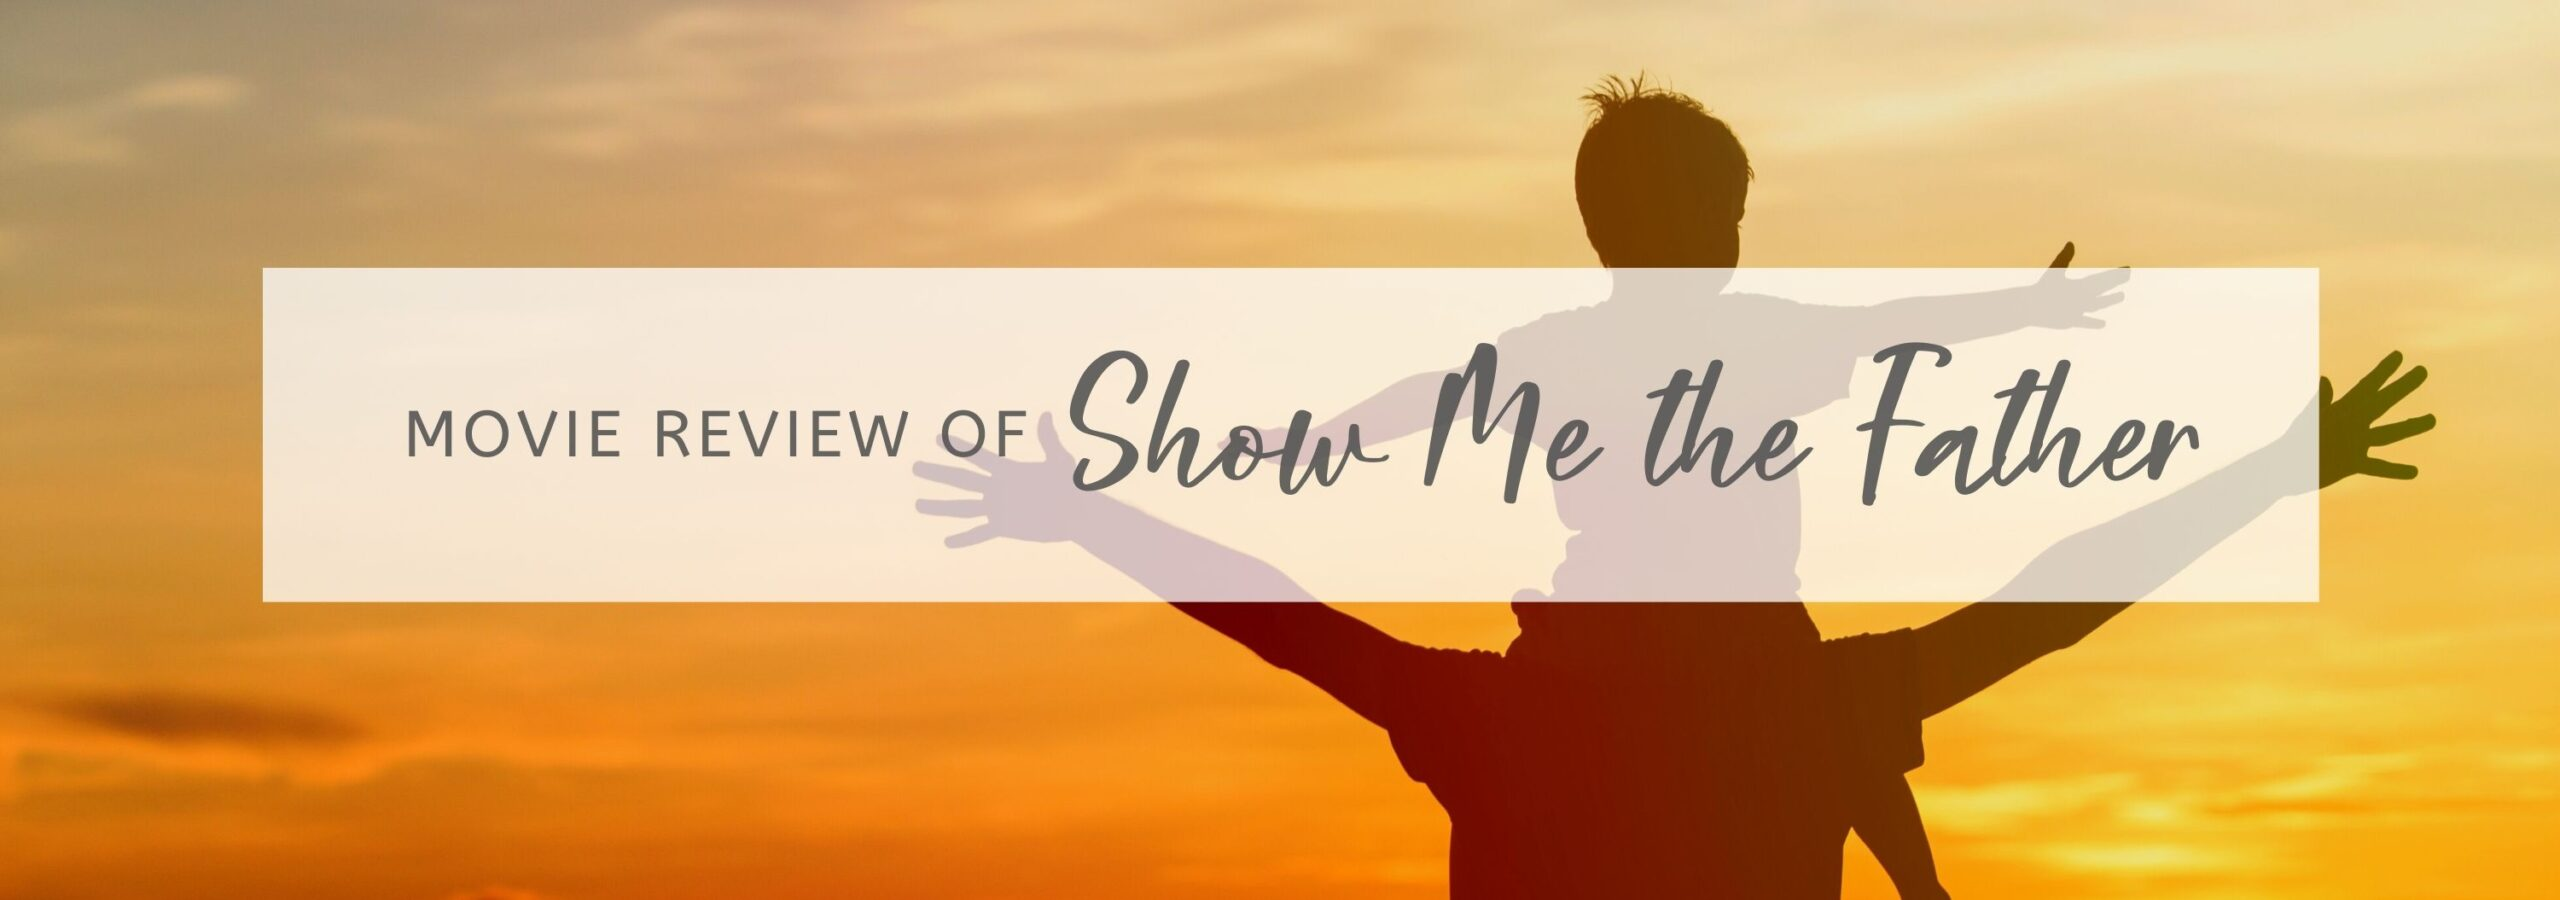 Show Me the Father banner